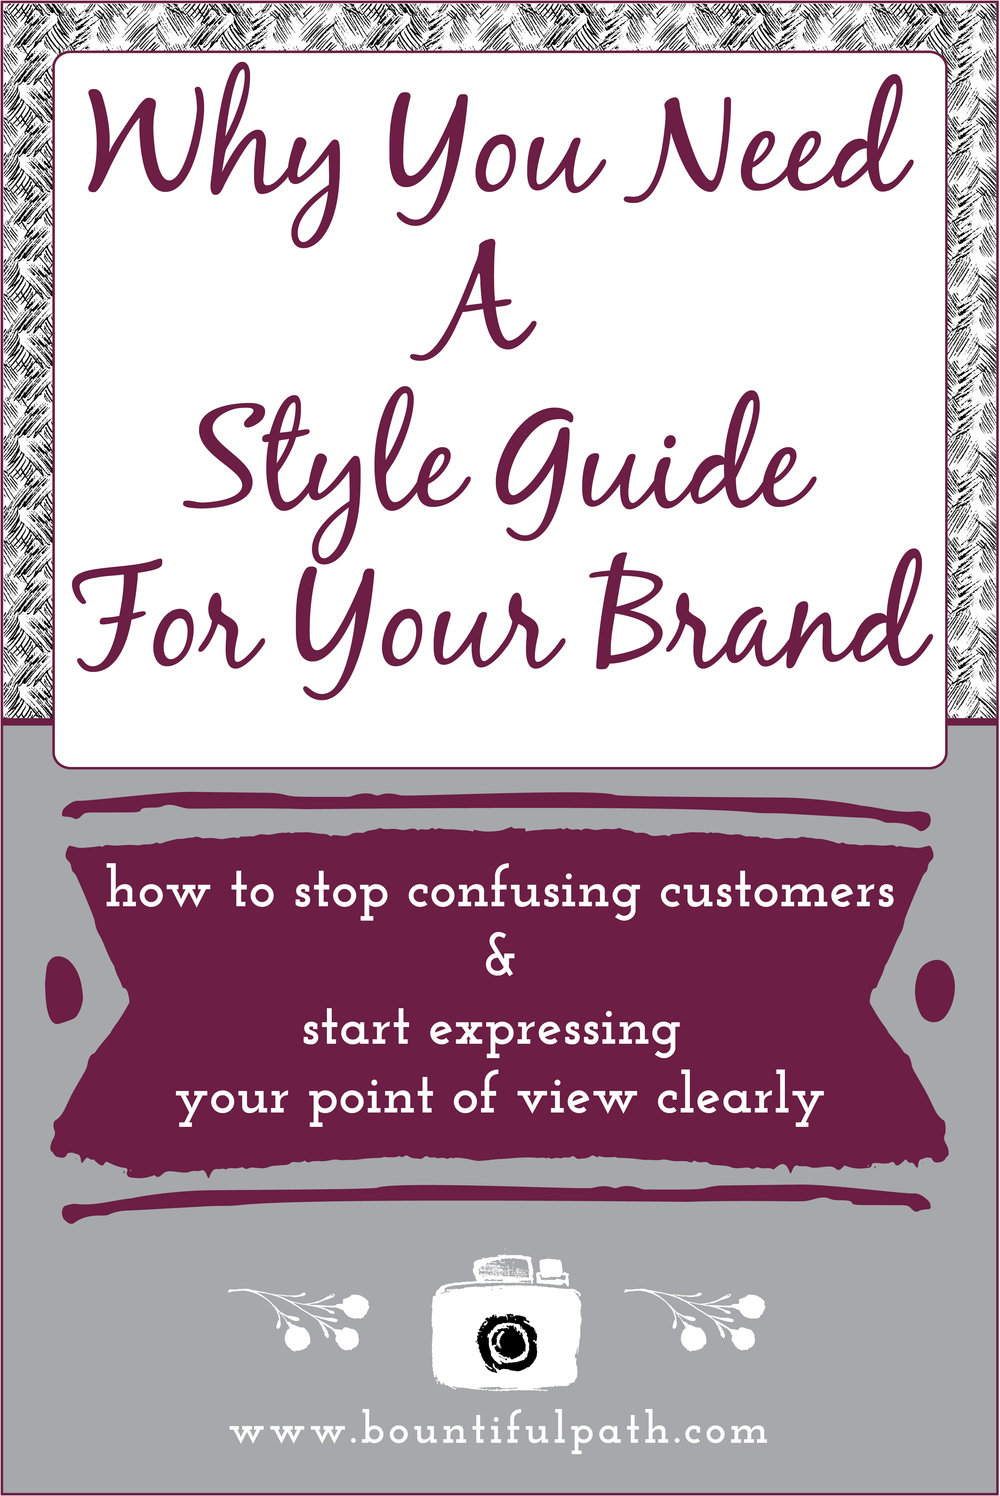 Why you need a style guide for your brand from Bountiful Path